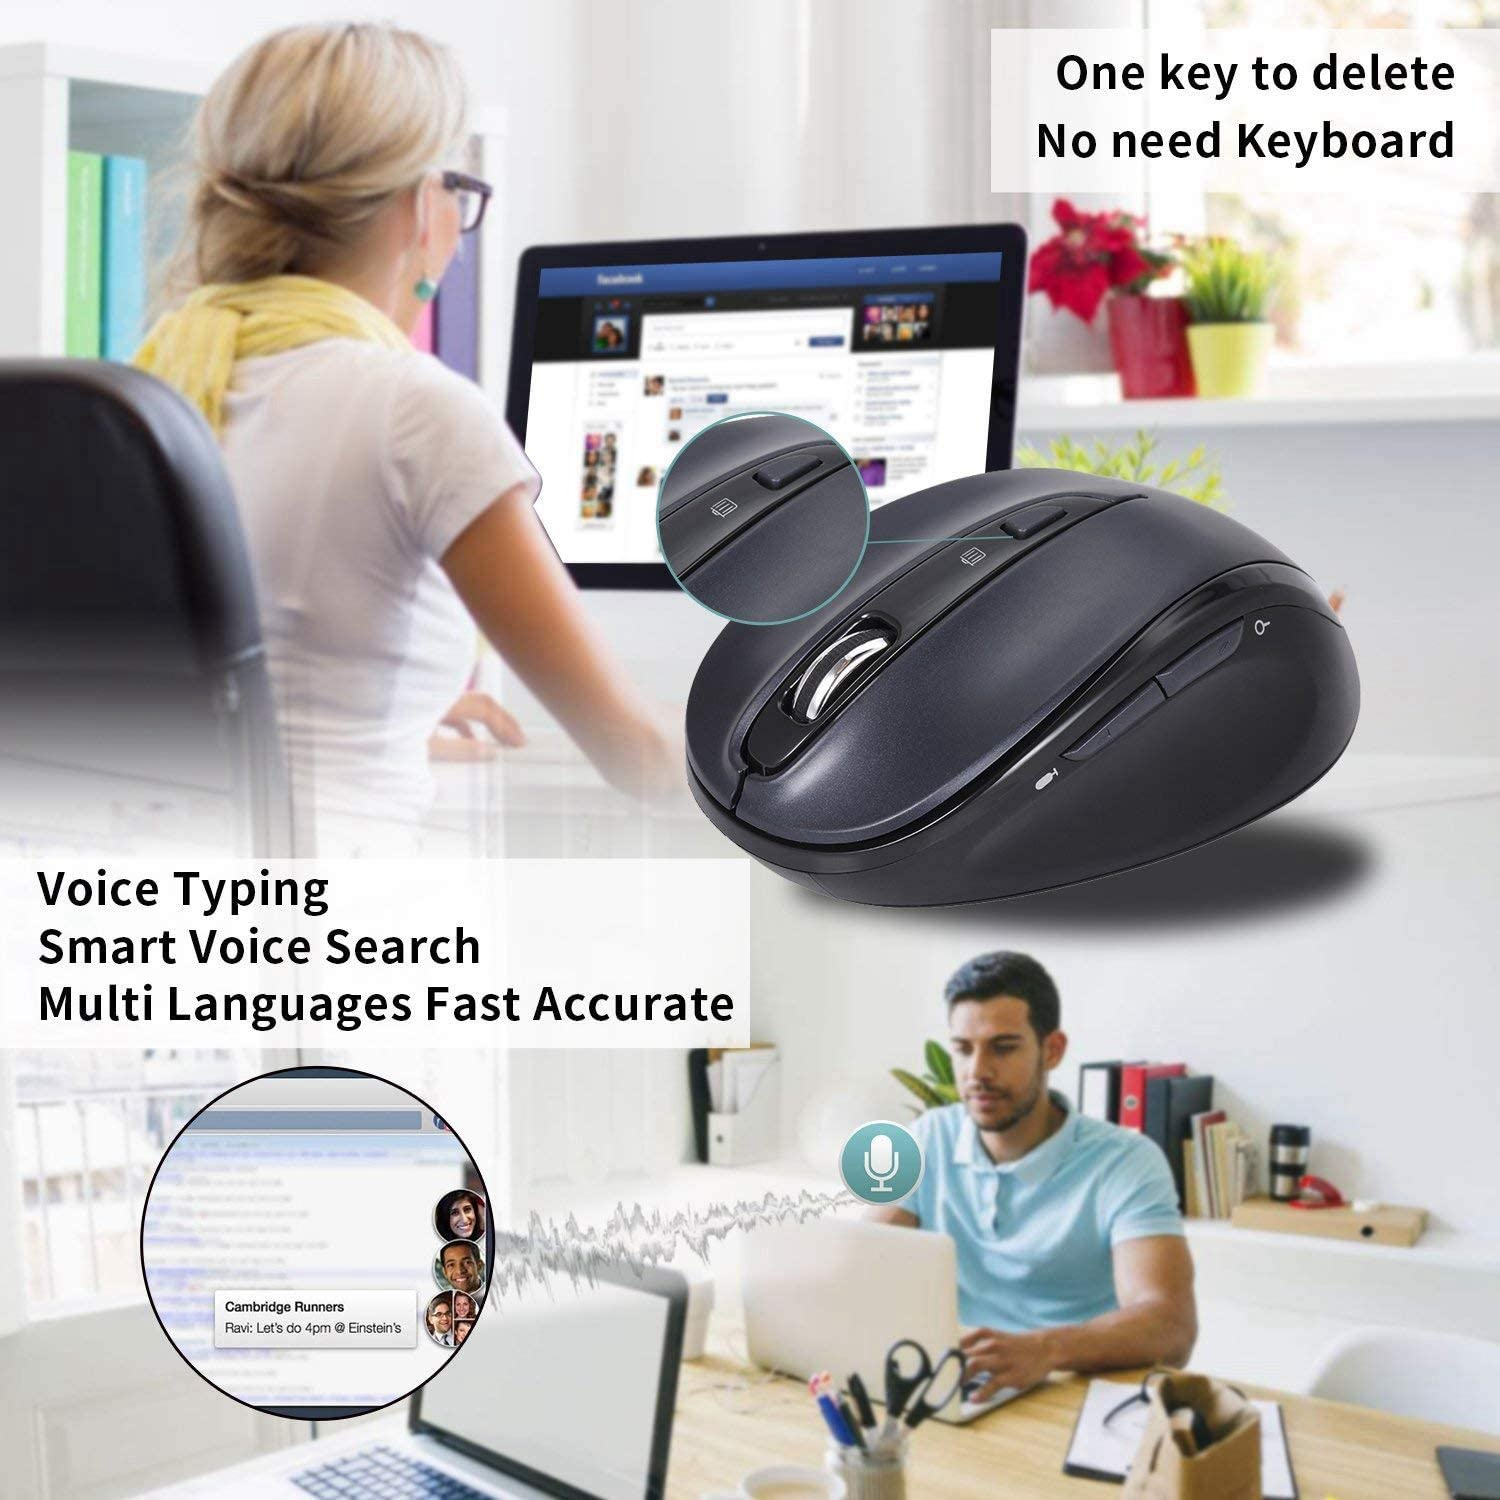 V3 Wireless Mobile Mouse adjustable Voice Typing Voice Command Long Range Wireless Mouse For Notebook Tablet Value-5-Star